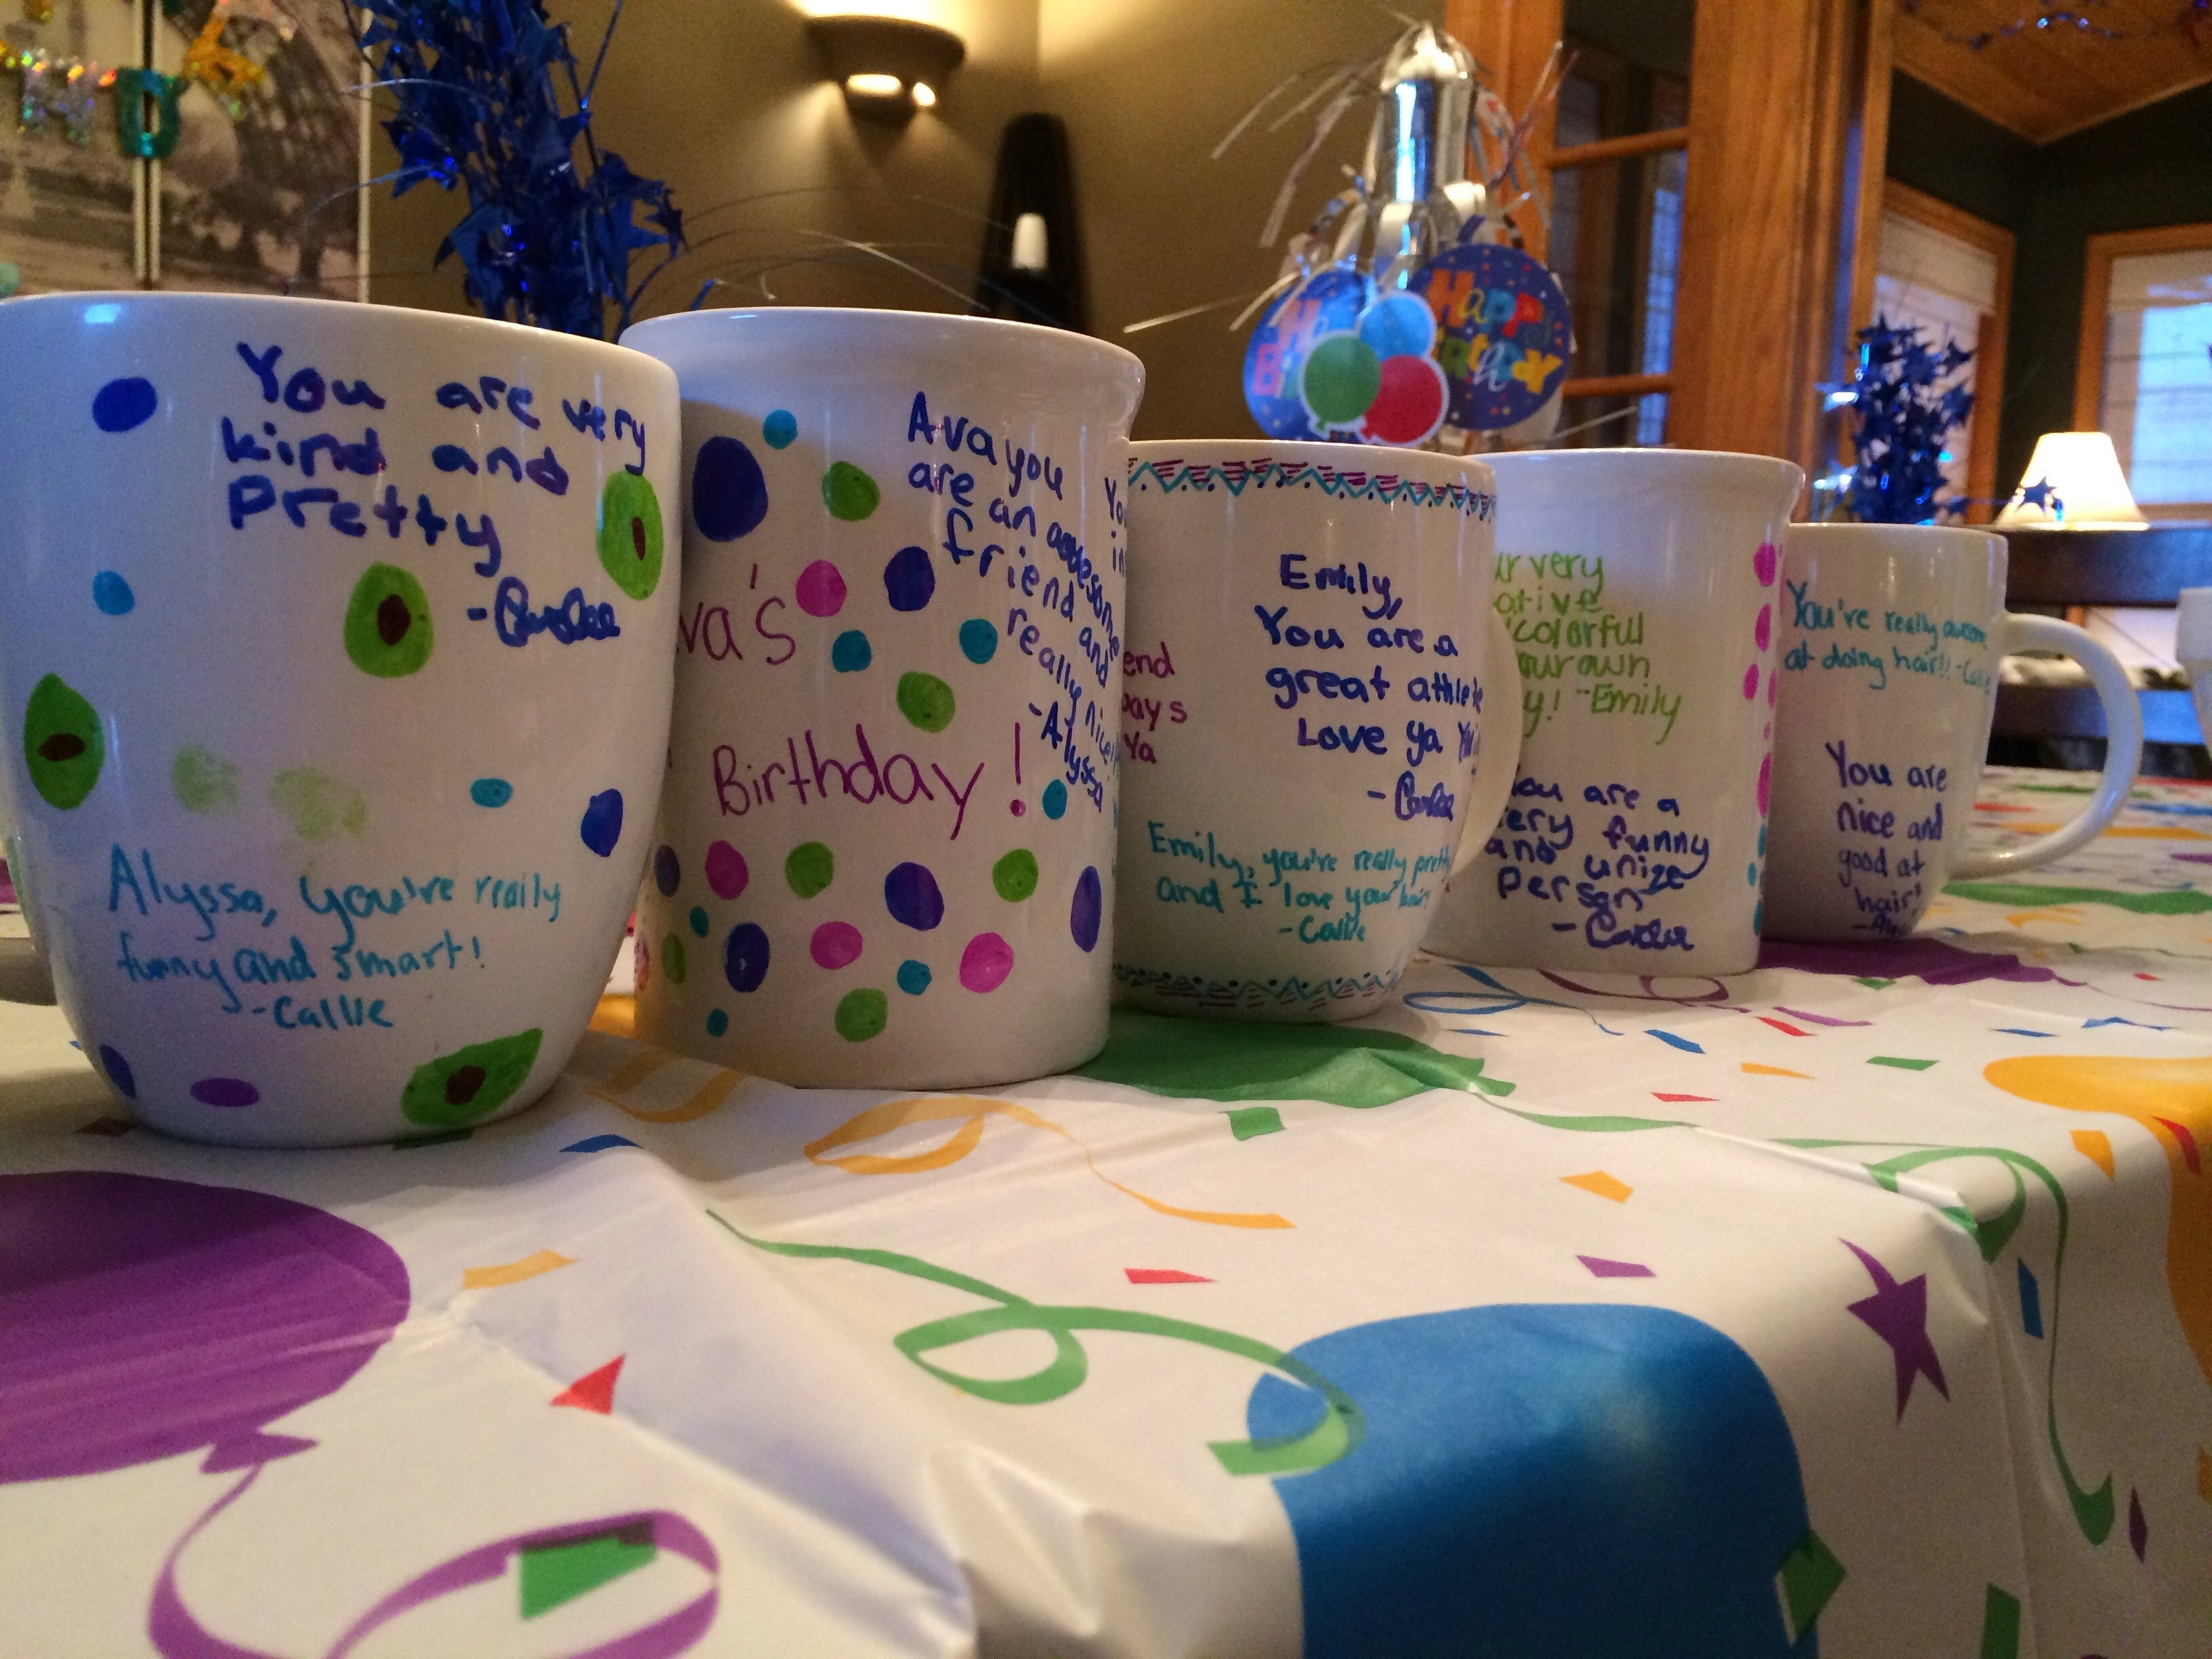 10 gorgeous ideas for a 12 year old birthday party